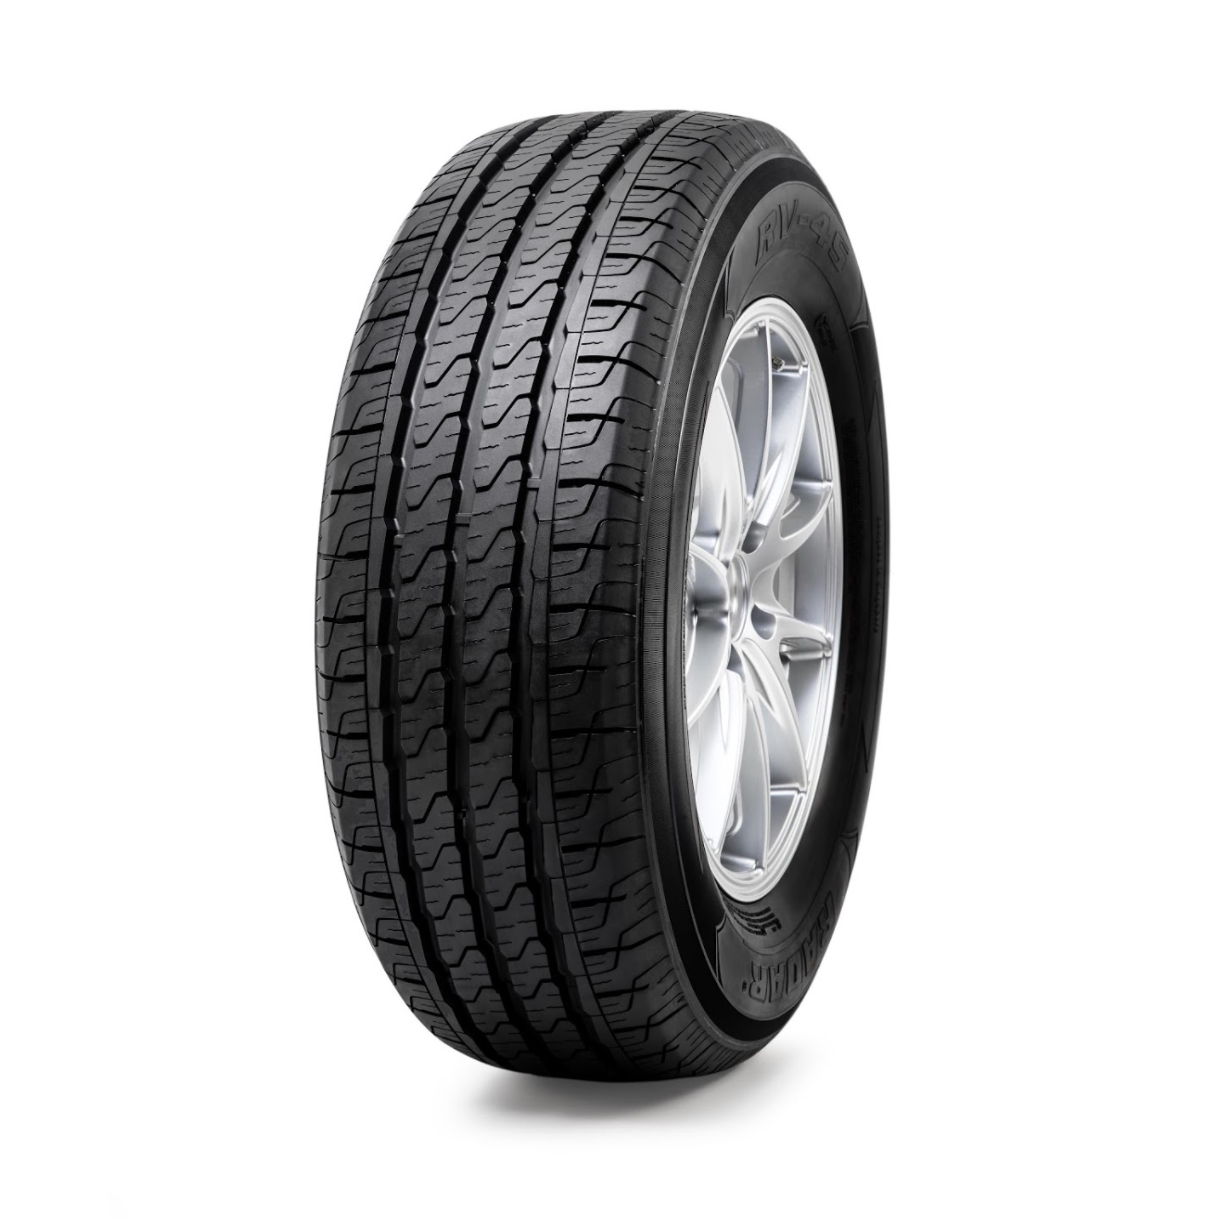 Summer Tyre RADAR ARGONITE (RV-4) 175/65R14 90/88 T